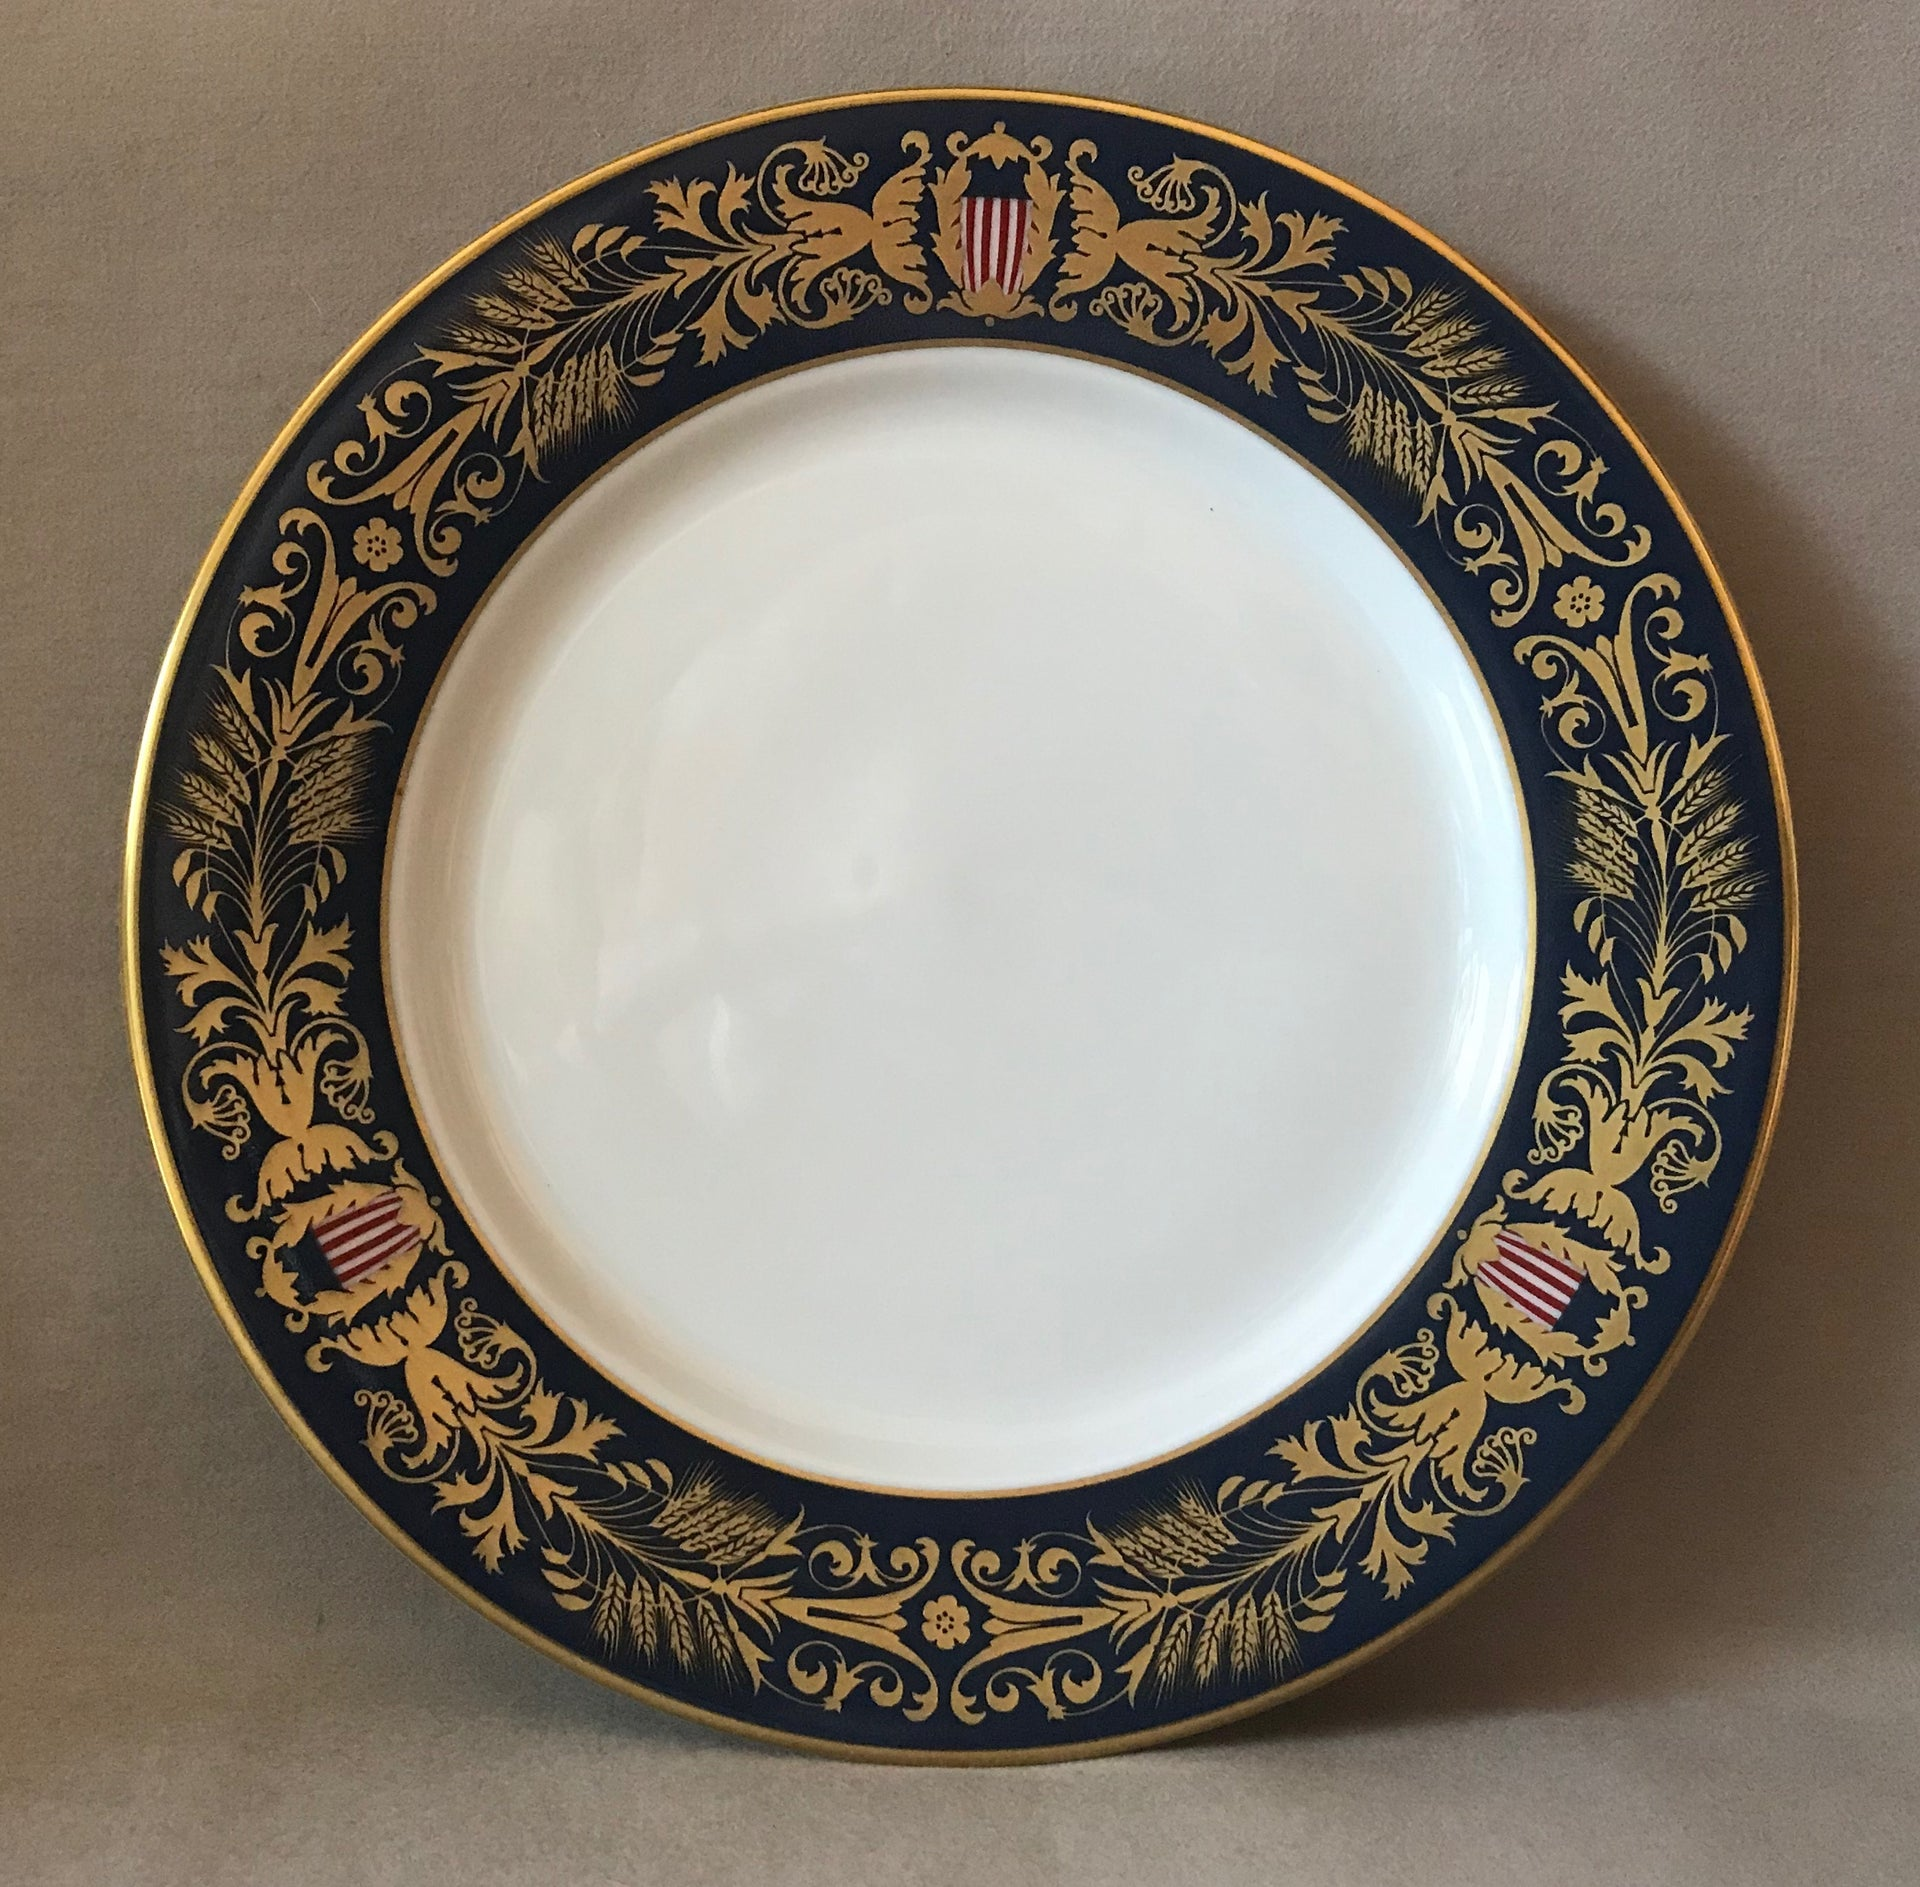 Tiffany & Co. U.S. Congress Meeting Bicentennial Plate (Circa 1989)